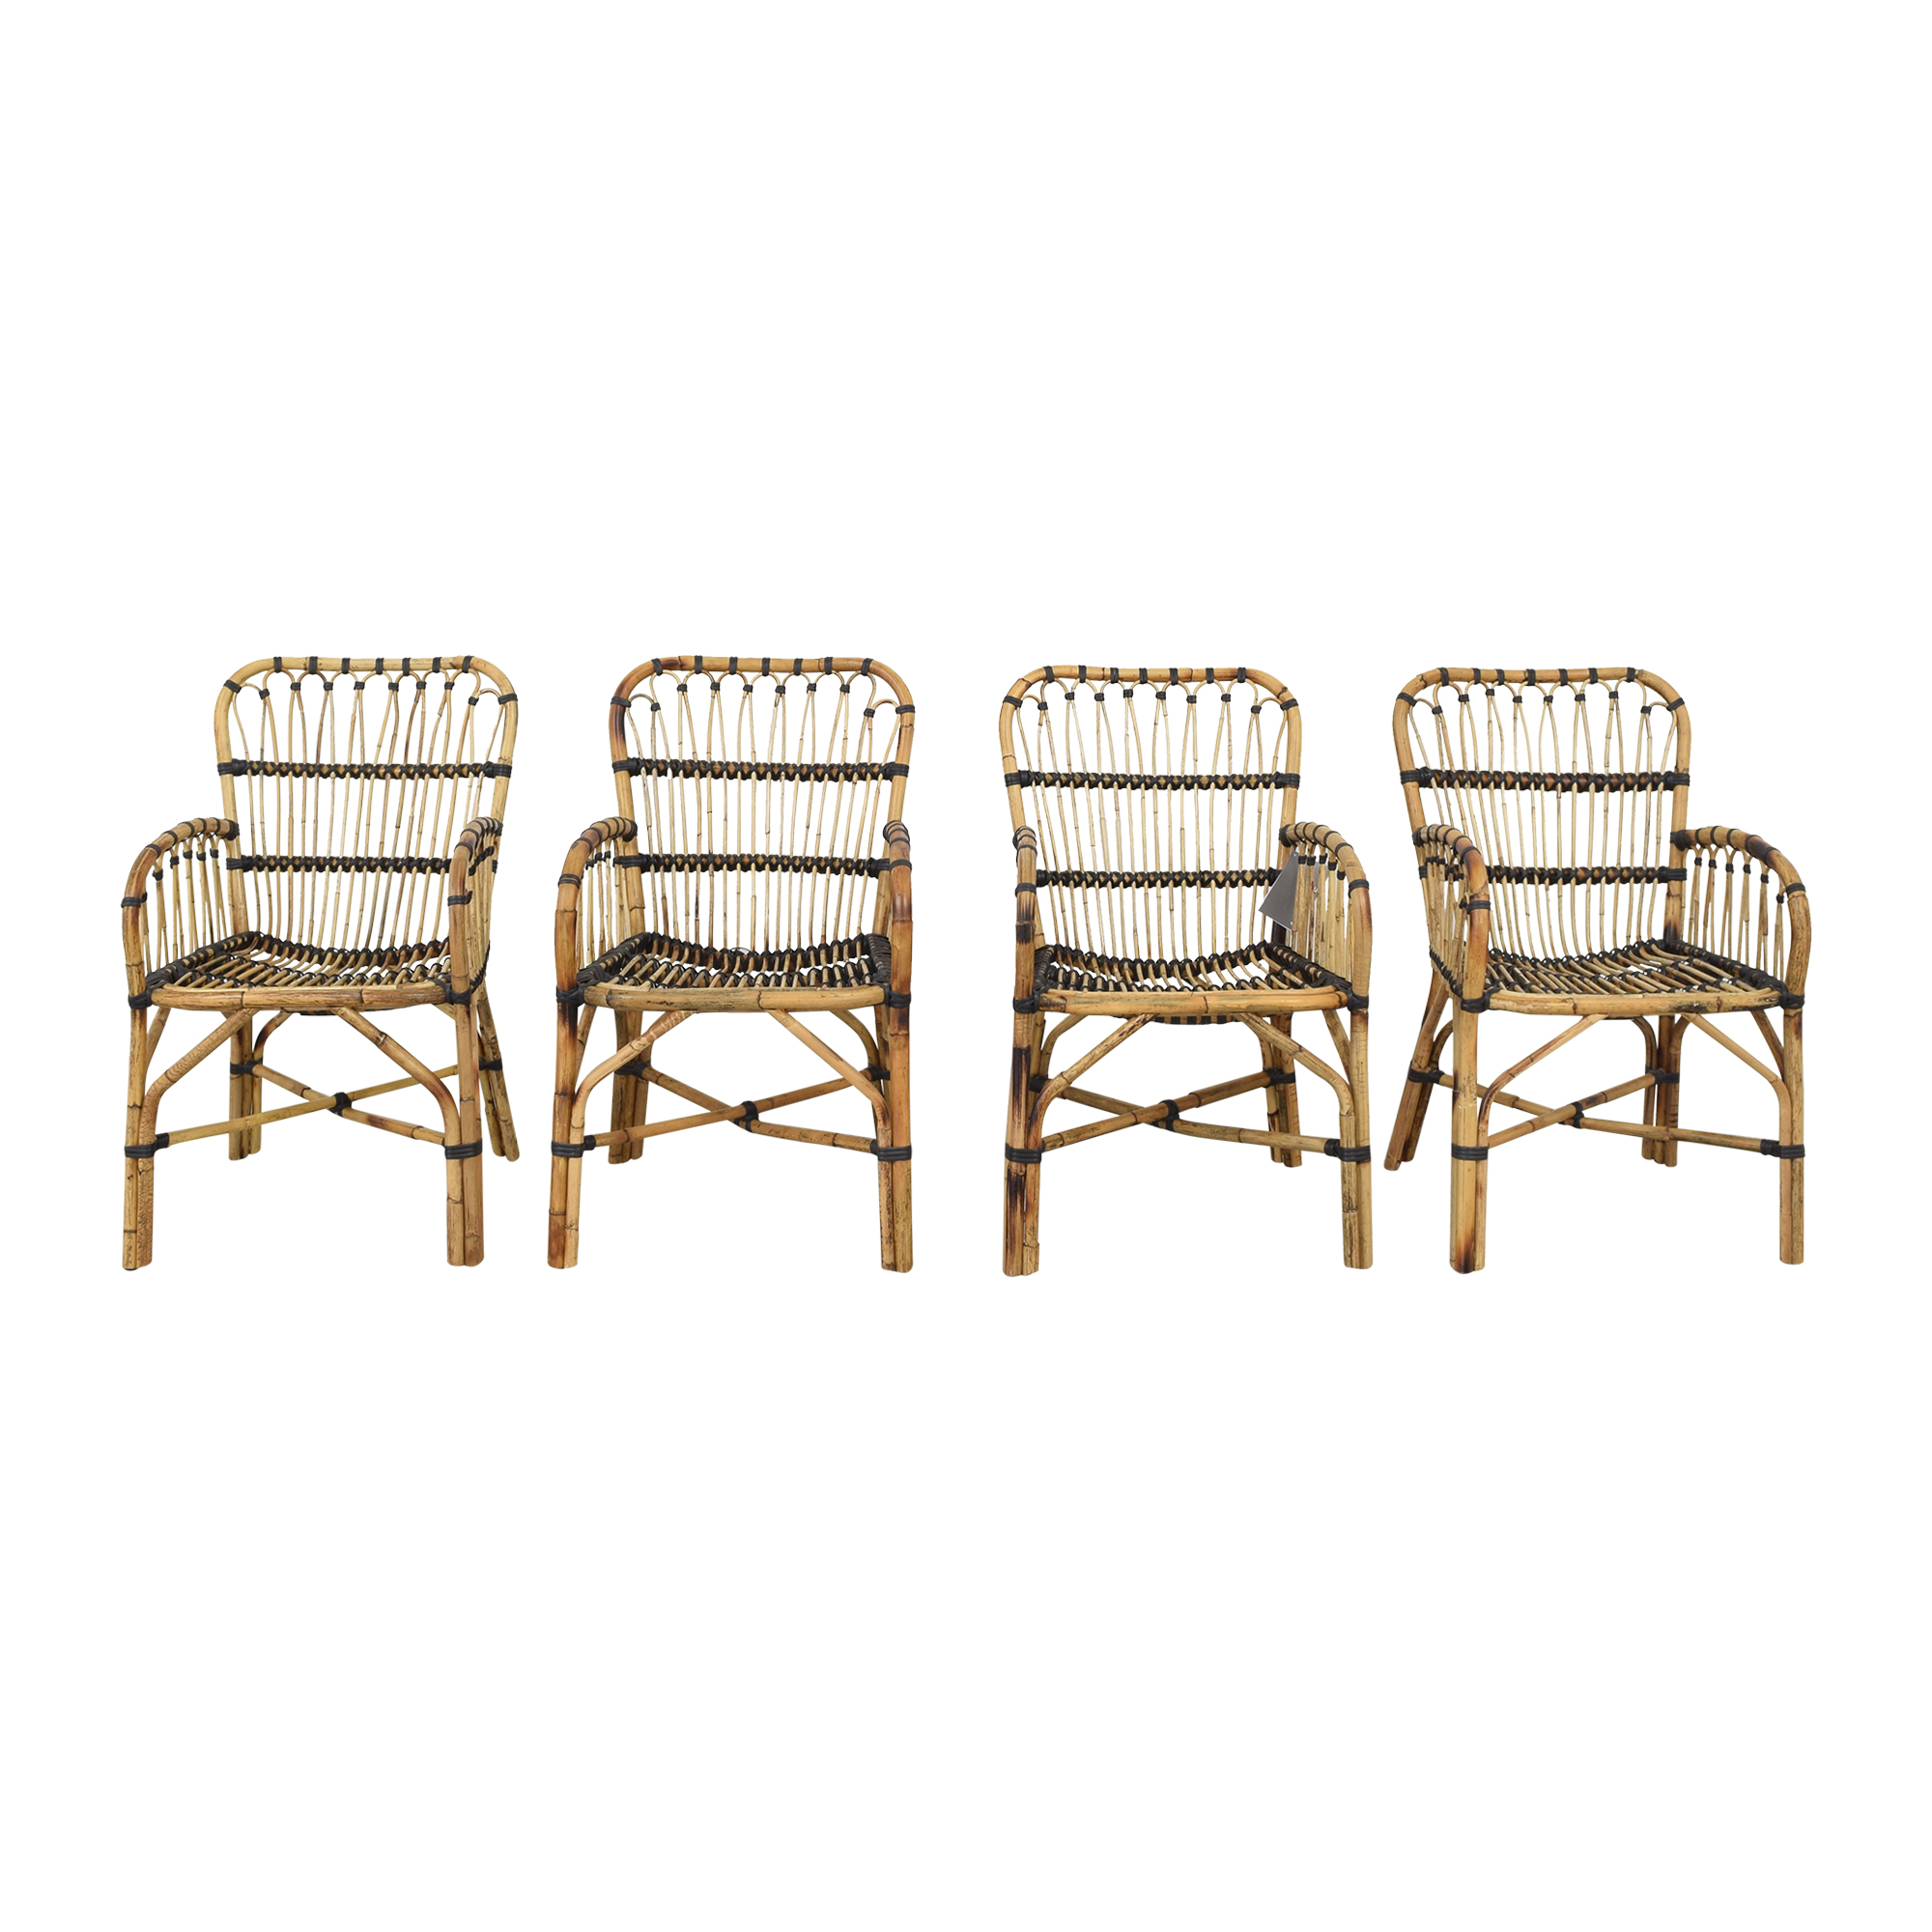 Article Article Malou Rattan Dining Chairs used